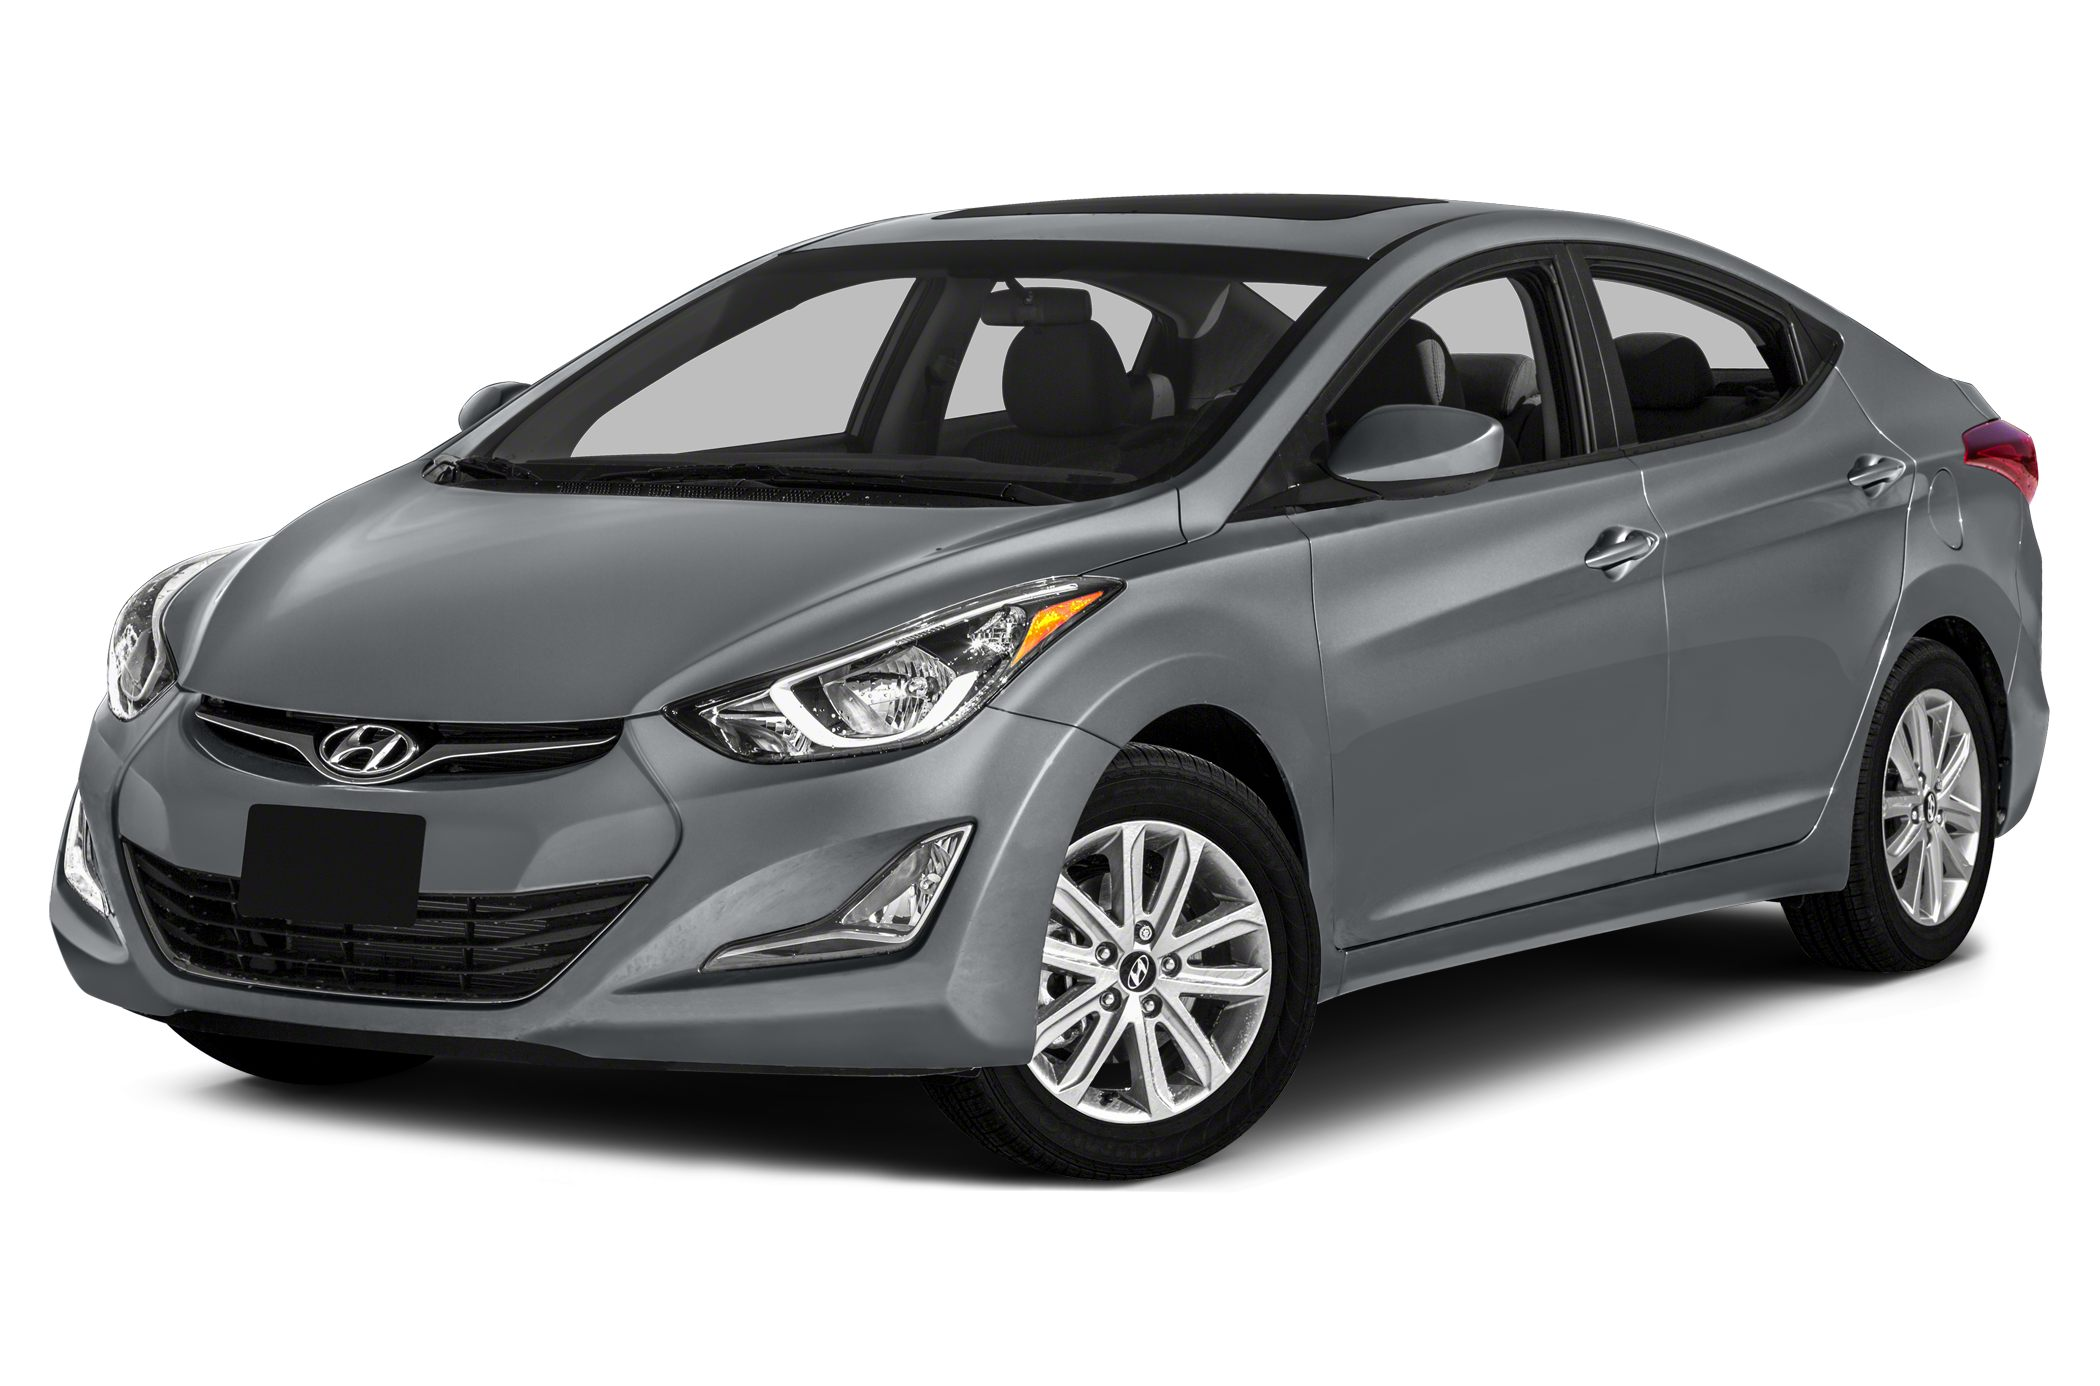 2016 Hyundai Elantra Gets New Value Edition Update